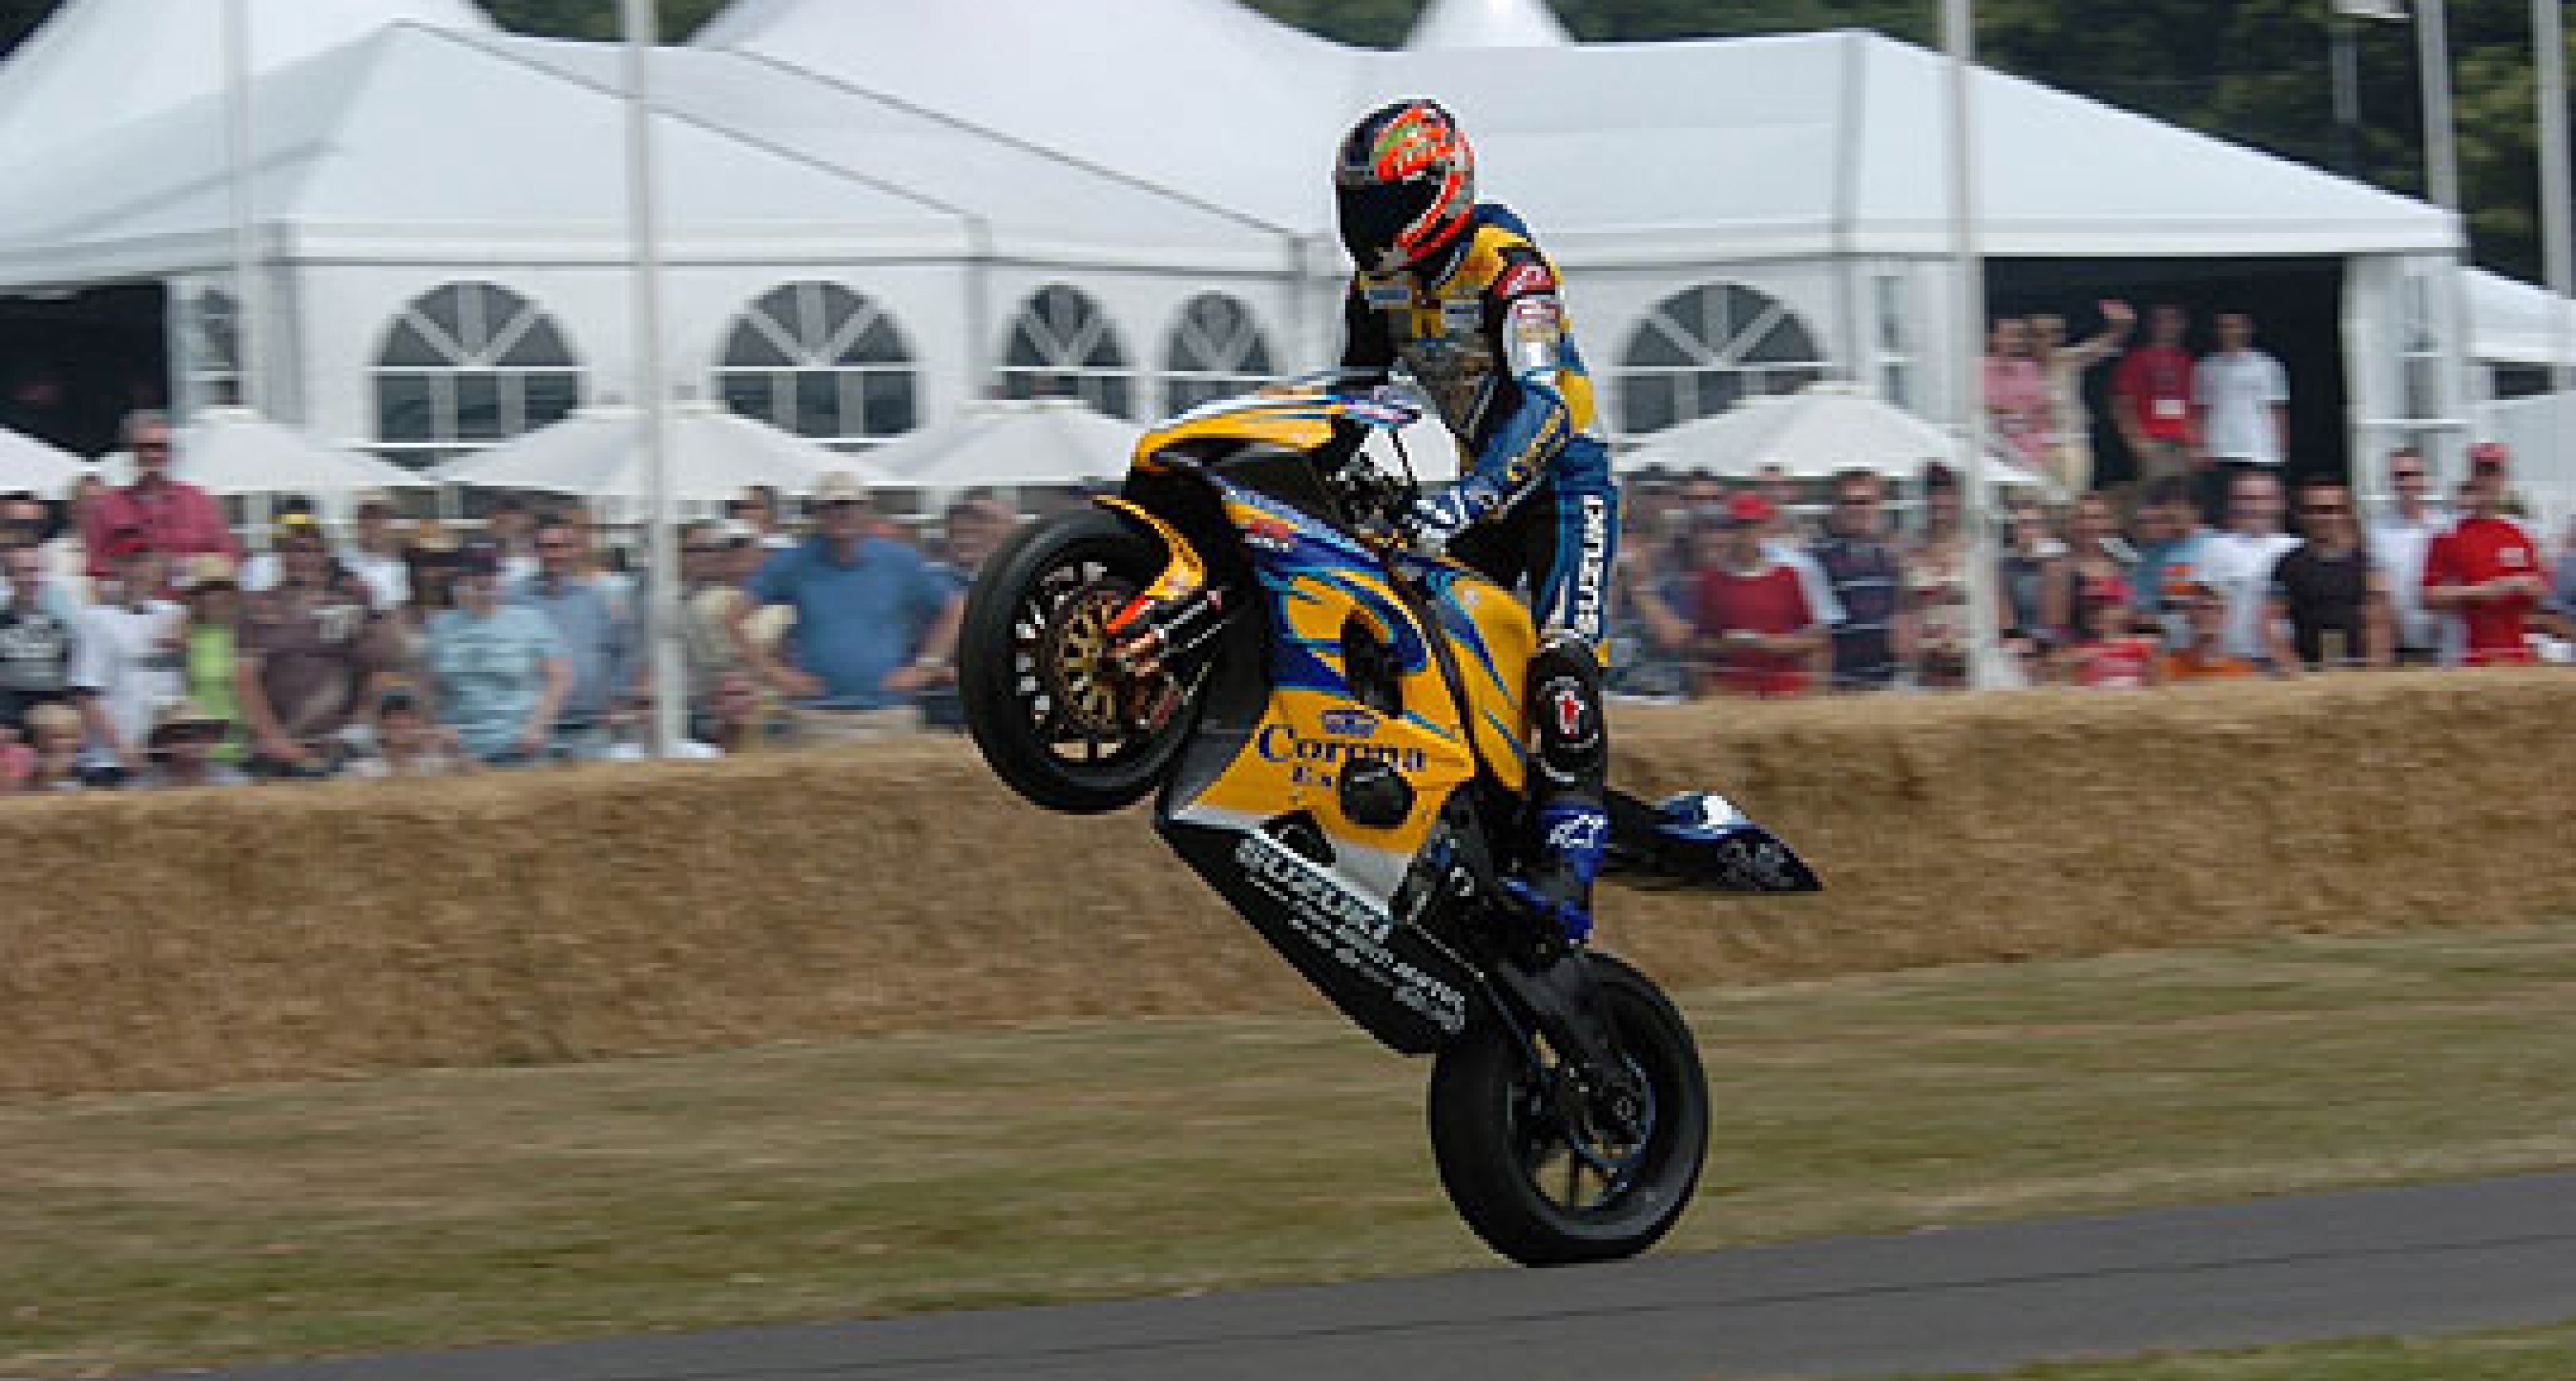 2009 Goodwood Festival of Speed – Preview